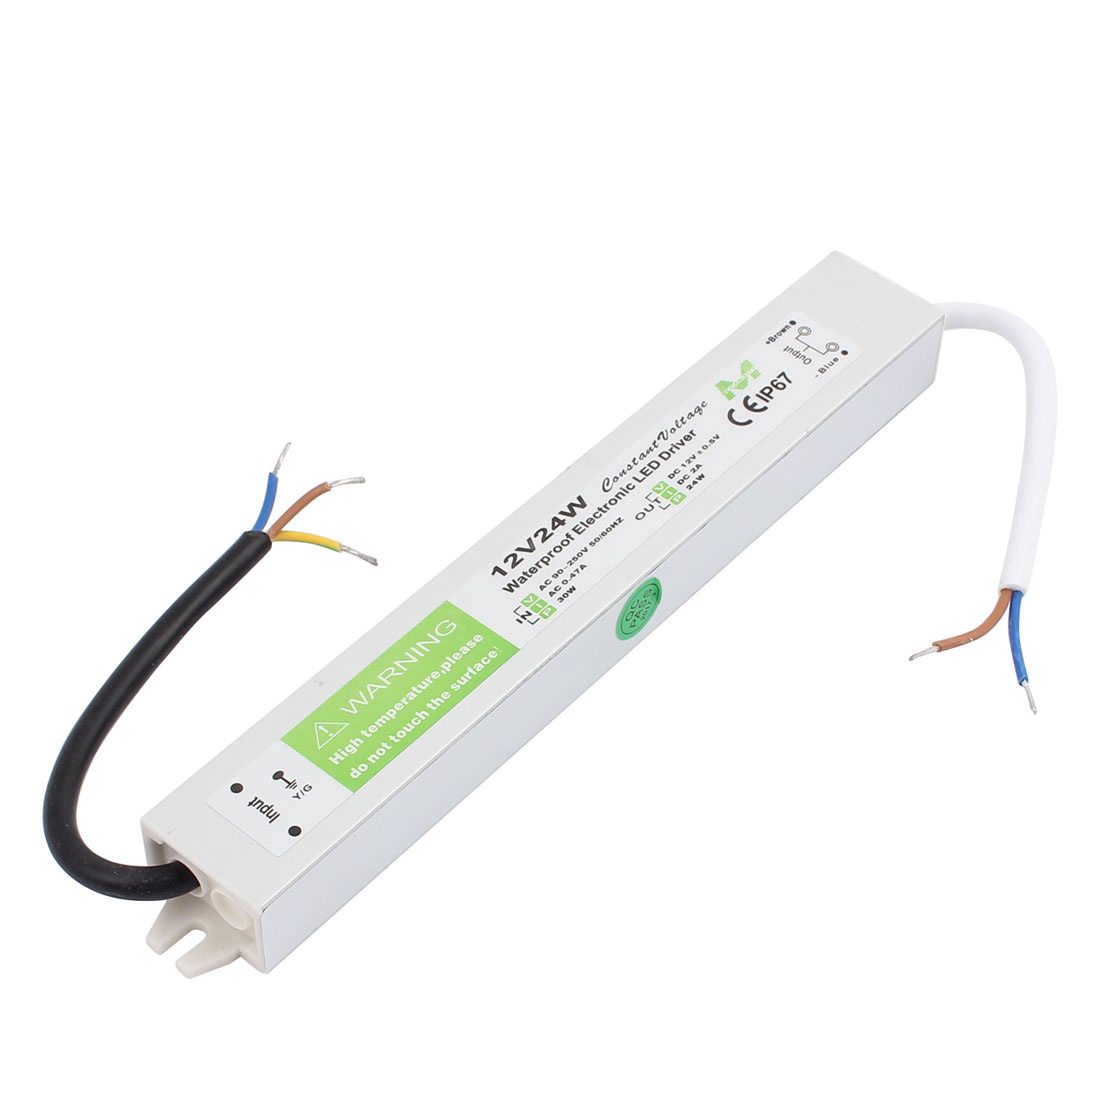 AC 90-250V to DC12V 24 Watt Transformer IP67 Waterproof LED Driver Power Supply